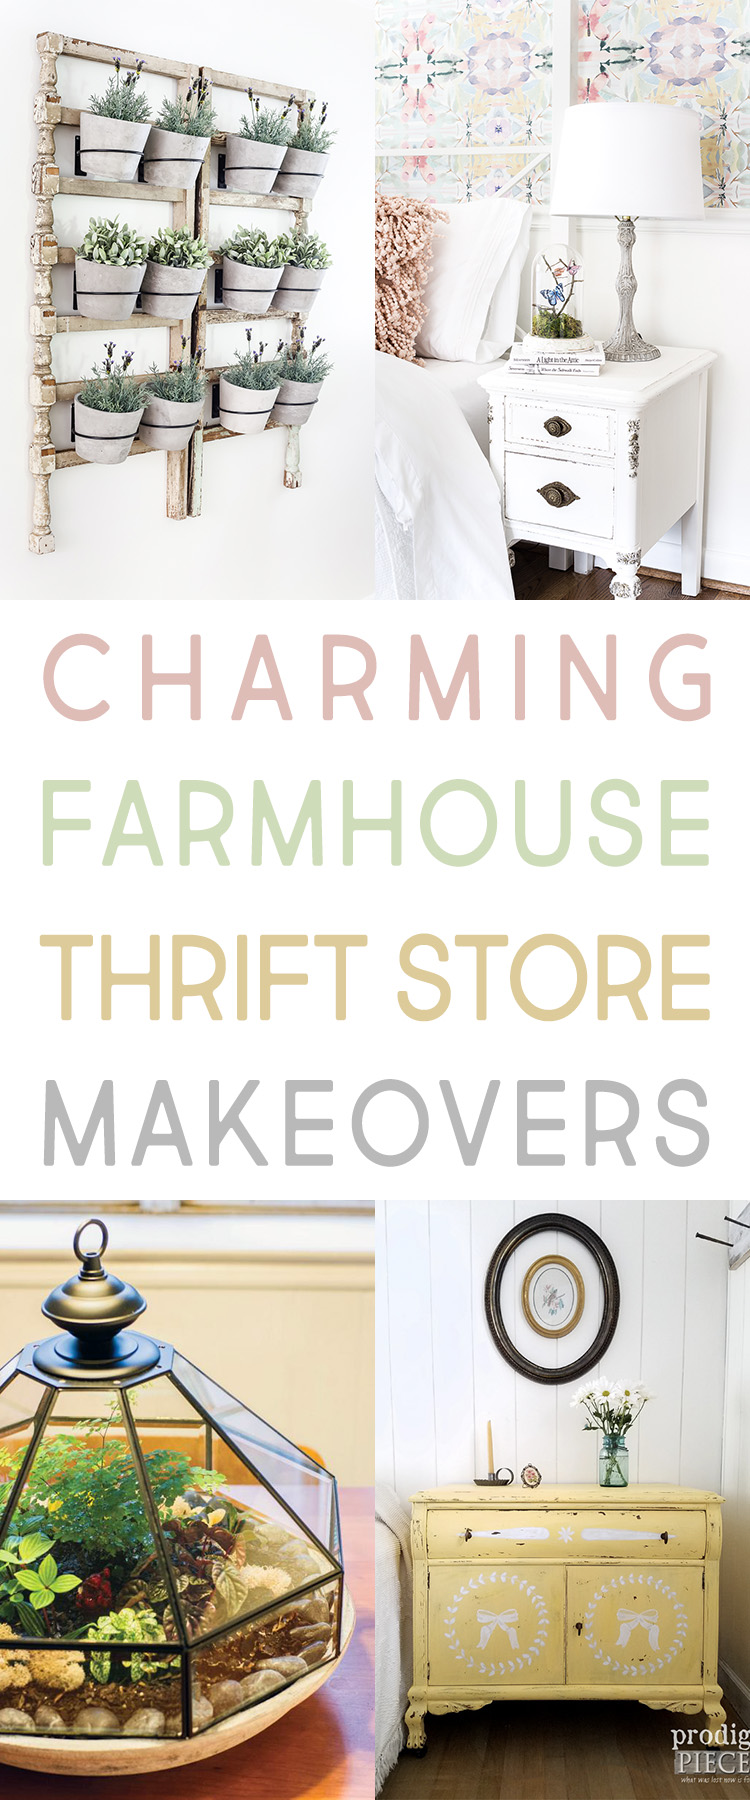 These charming farmhouse thrift store makeovers are unique and so cute.